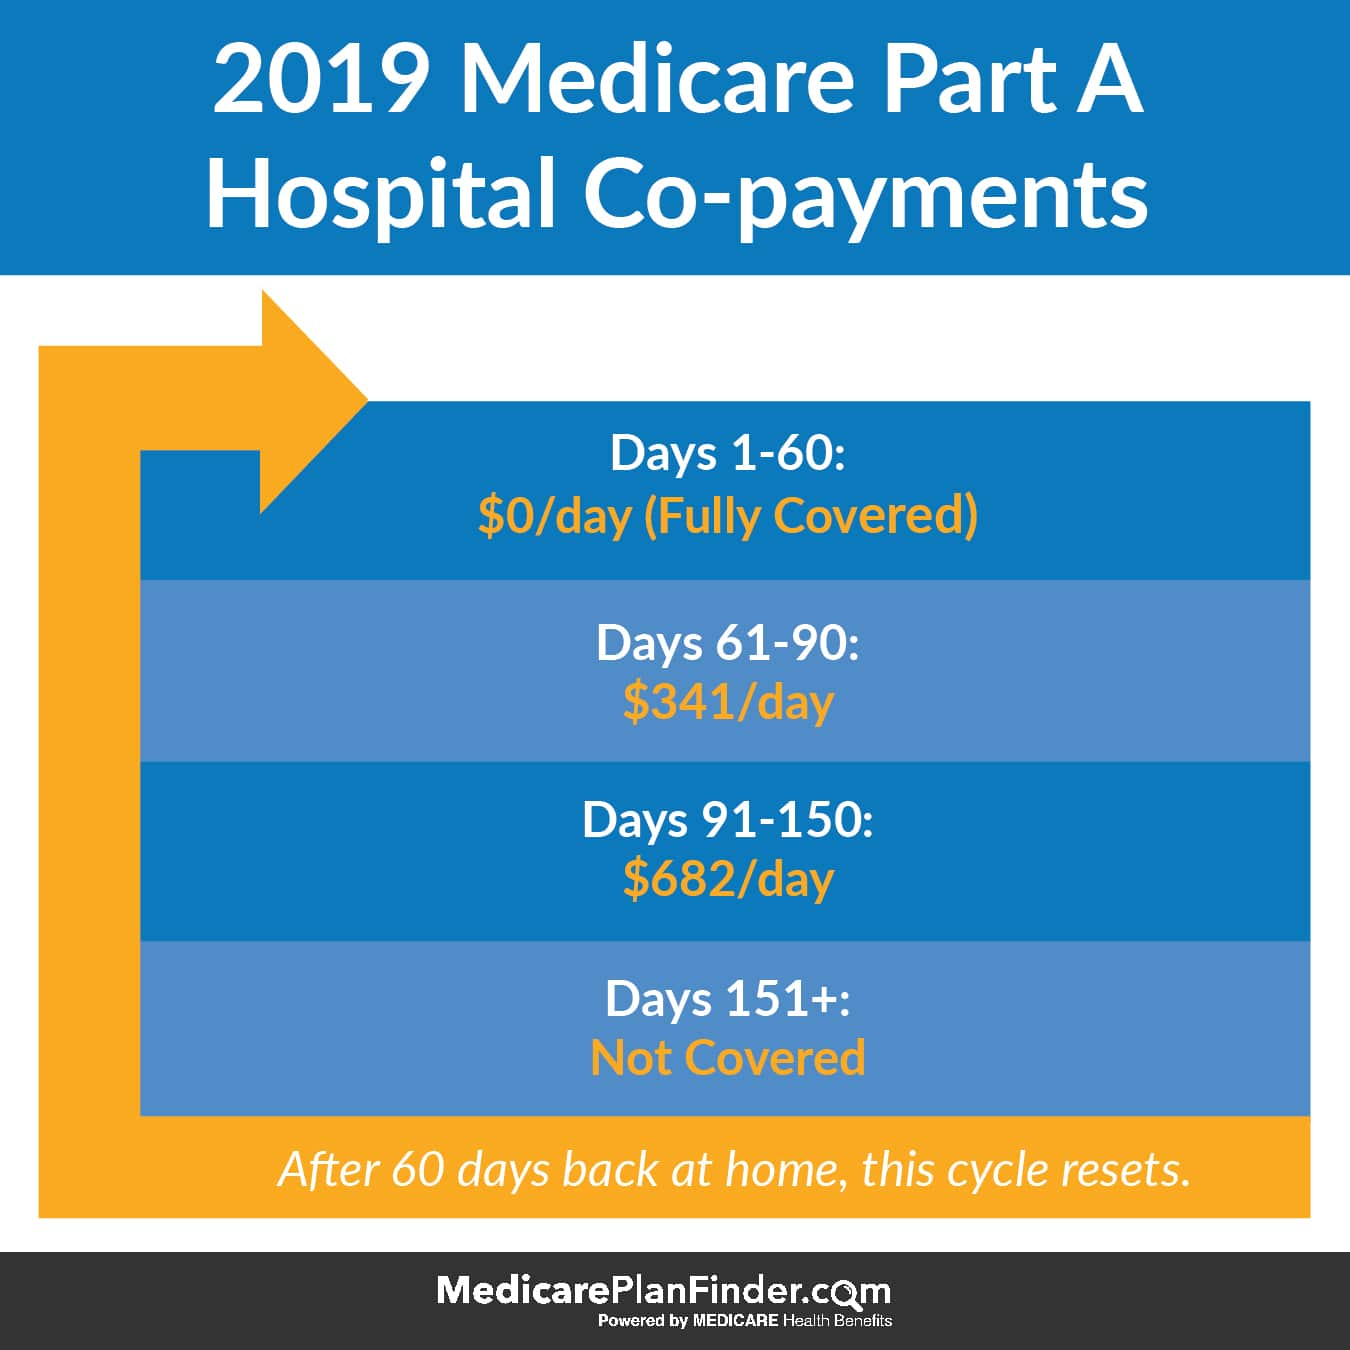 Medicare Part A Hospital Copayments | Medicare Plan Finder